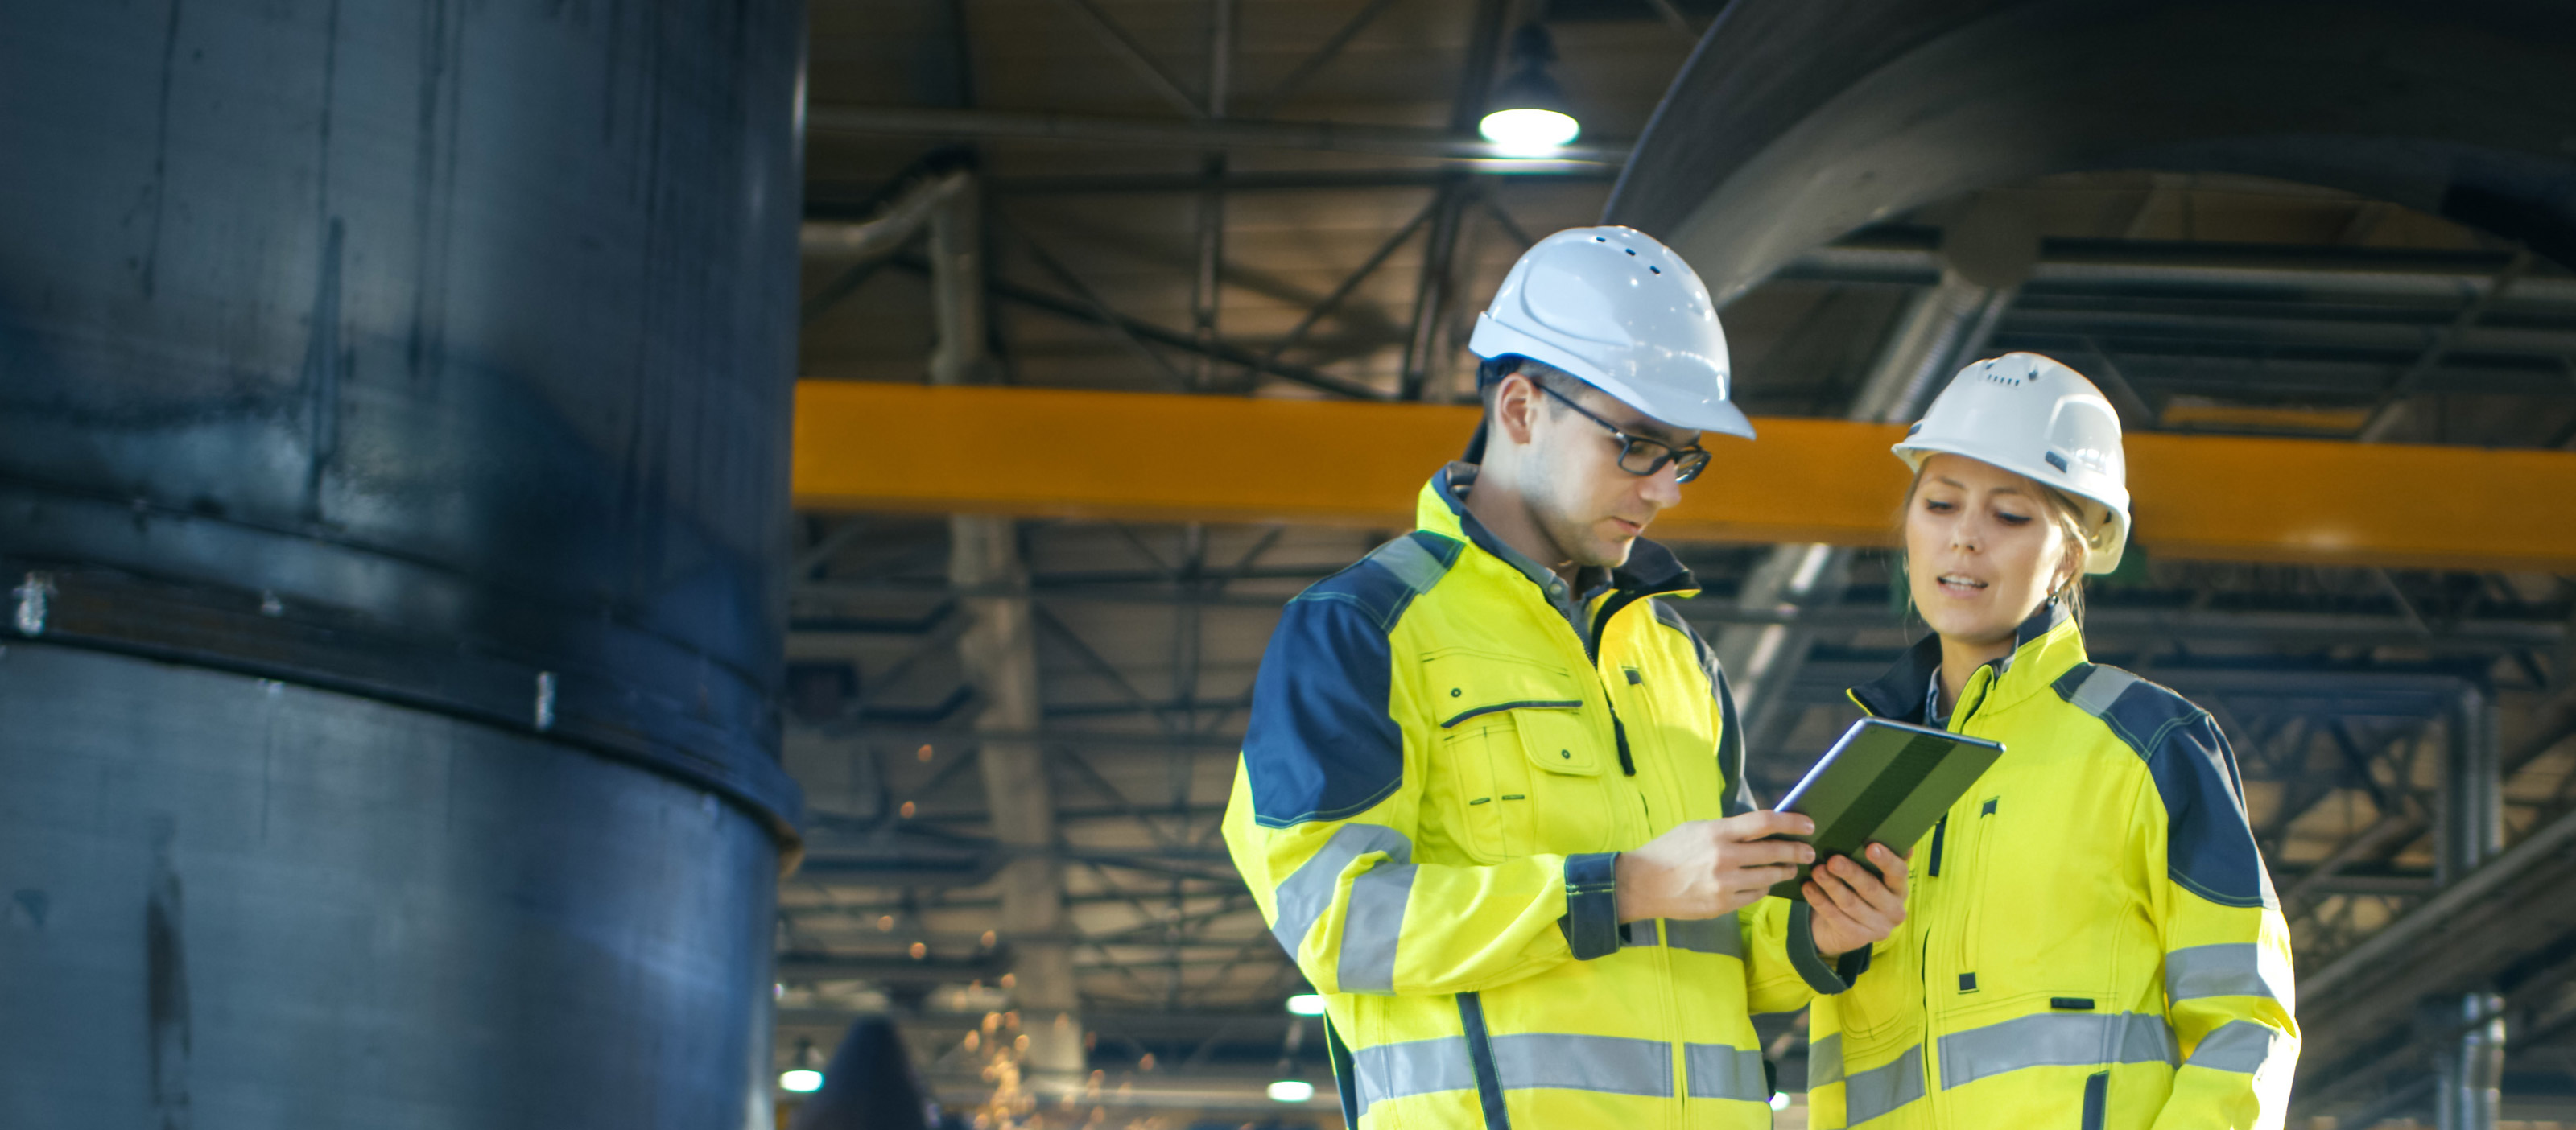 HMI/SCADA software in use in industrial operations